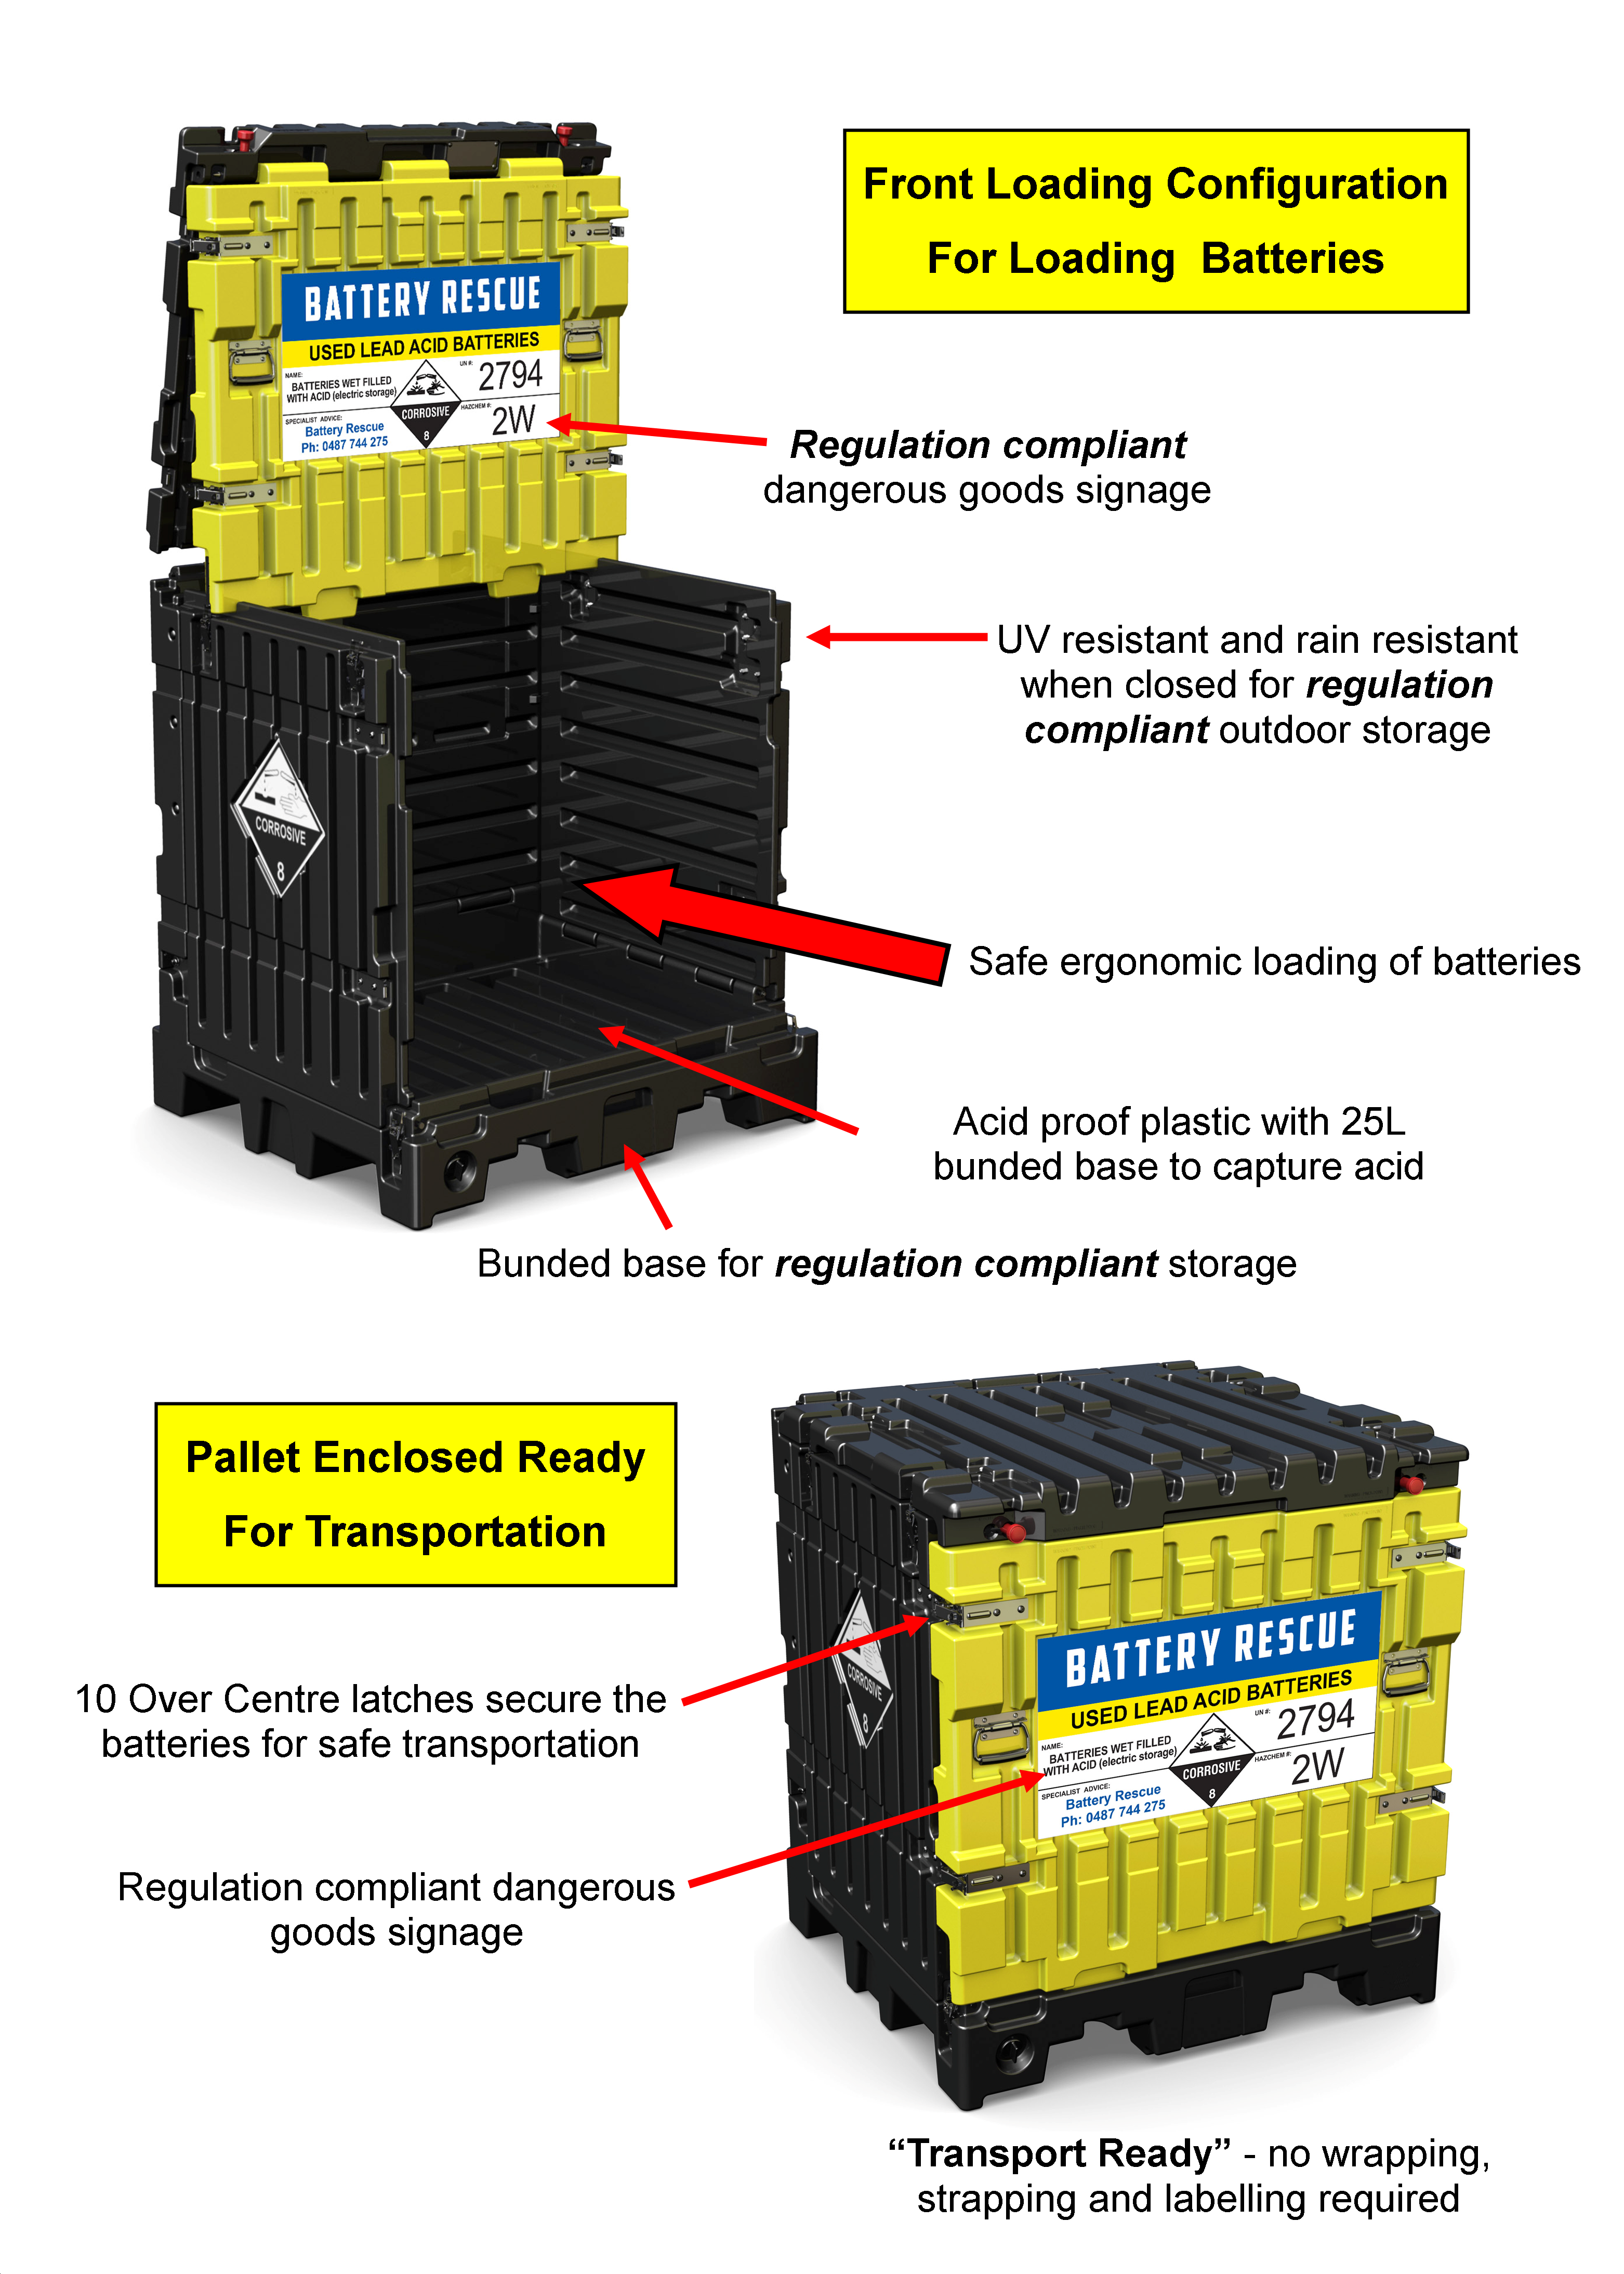 Benefits of UNISEG Pallet for storing and transporting used lead acid batteries